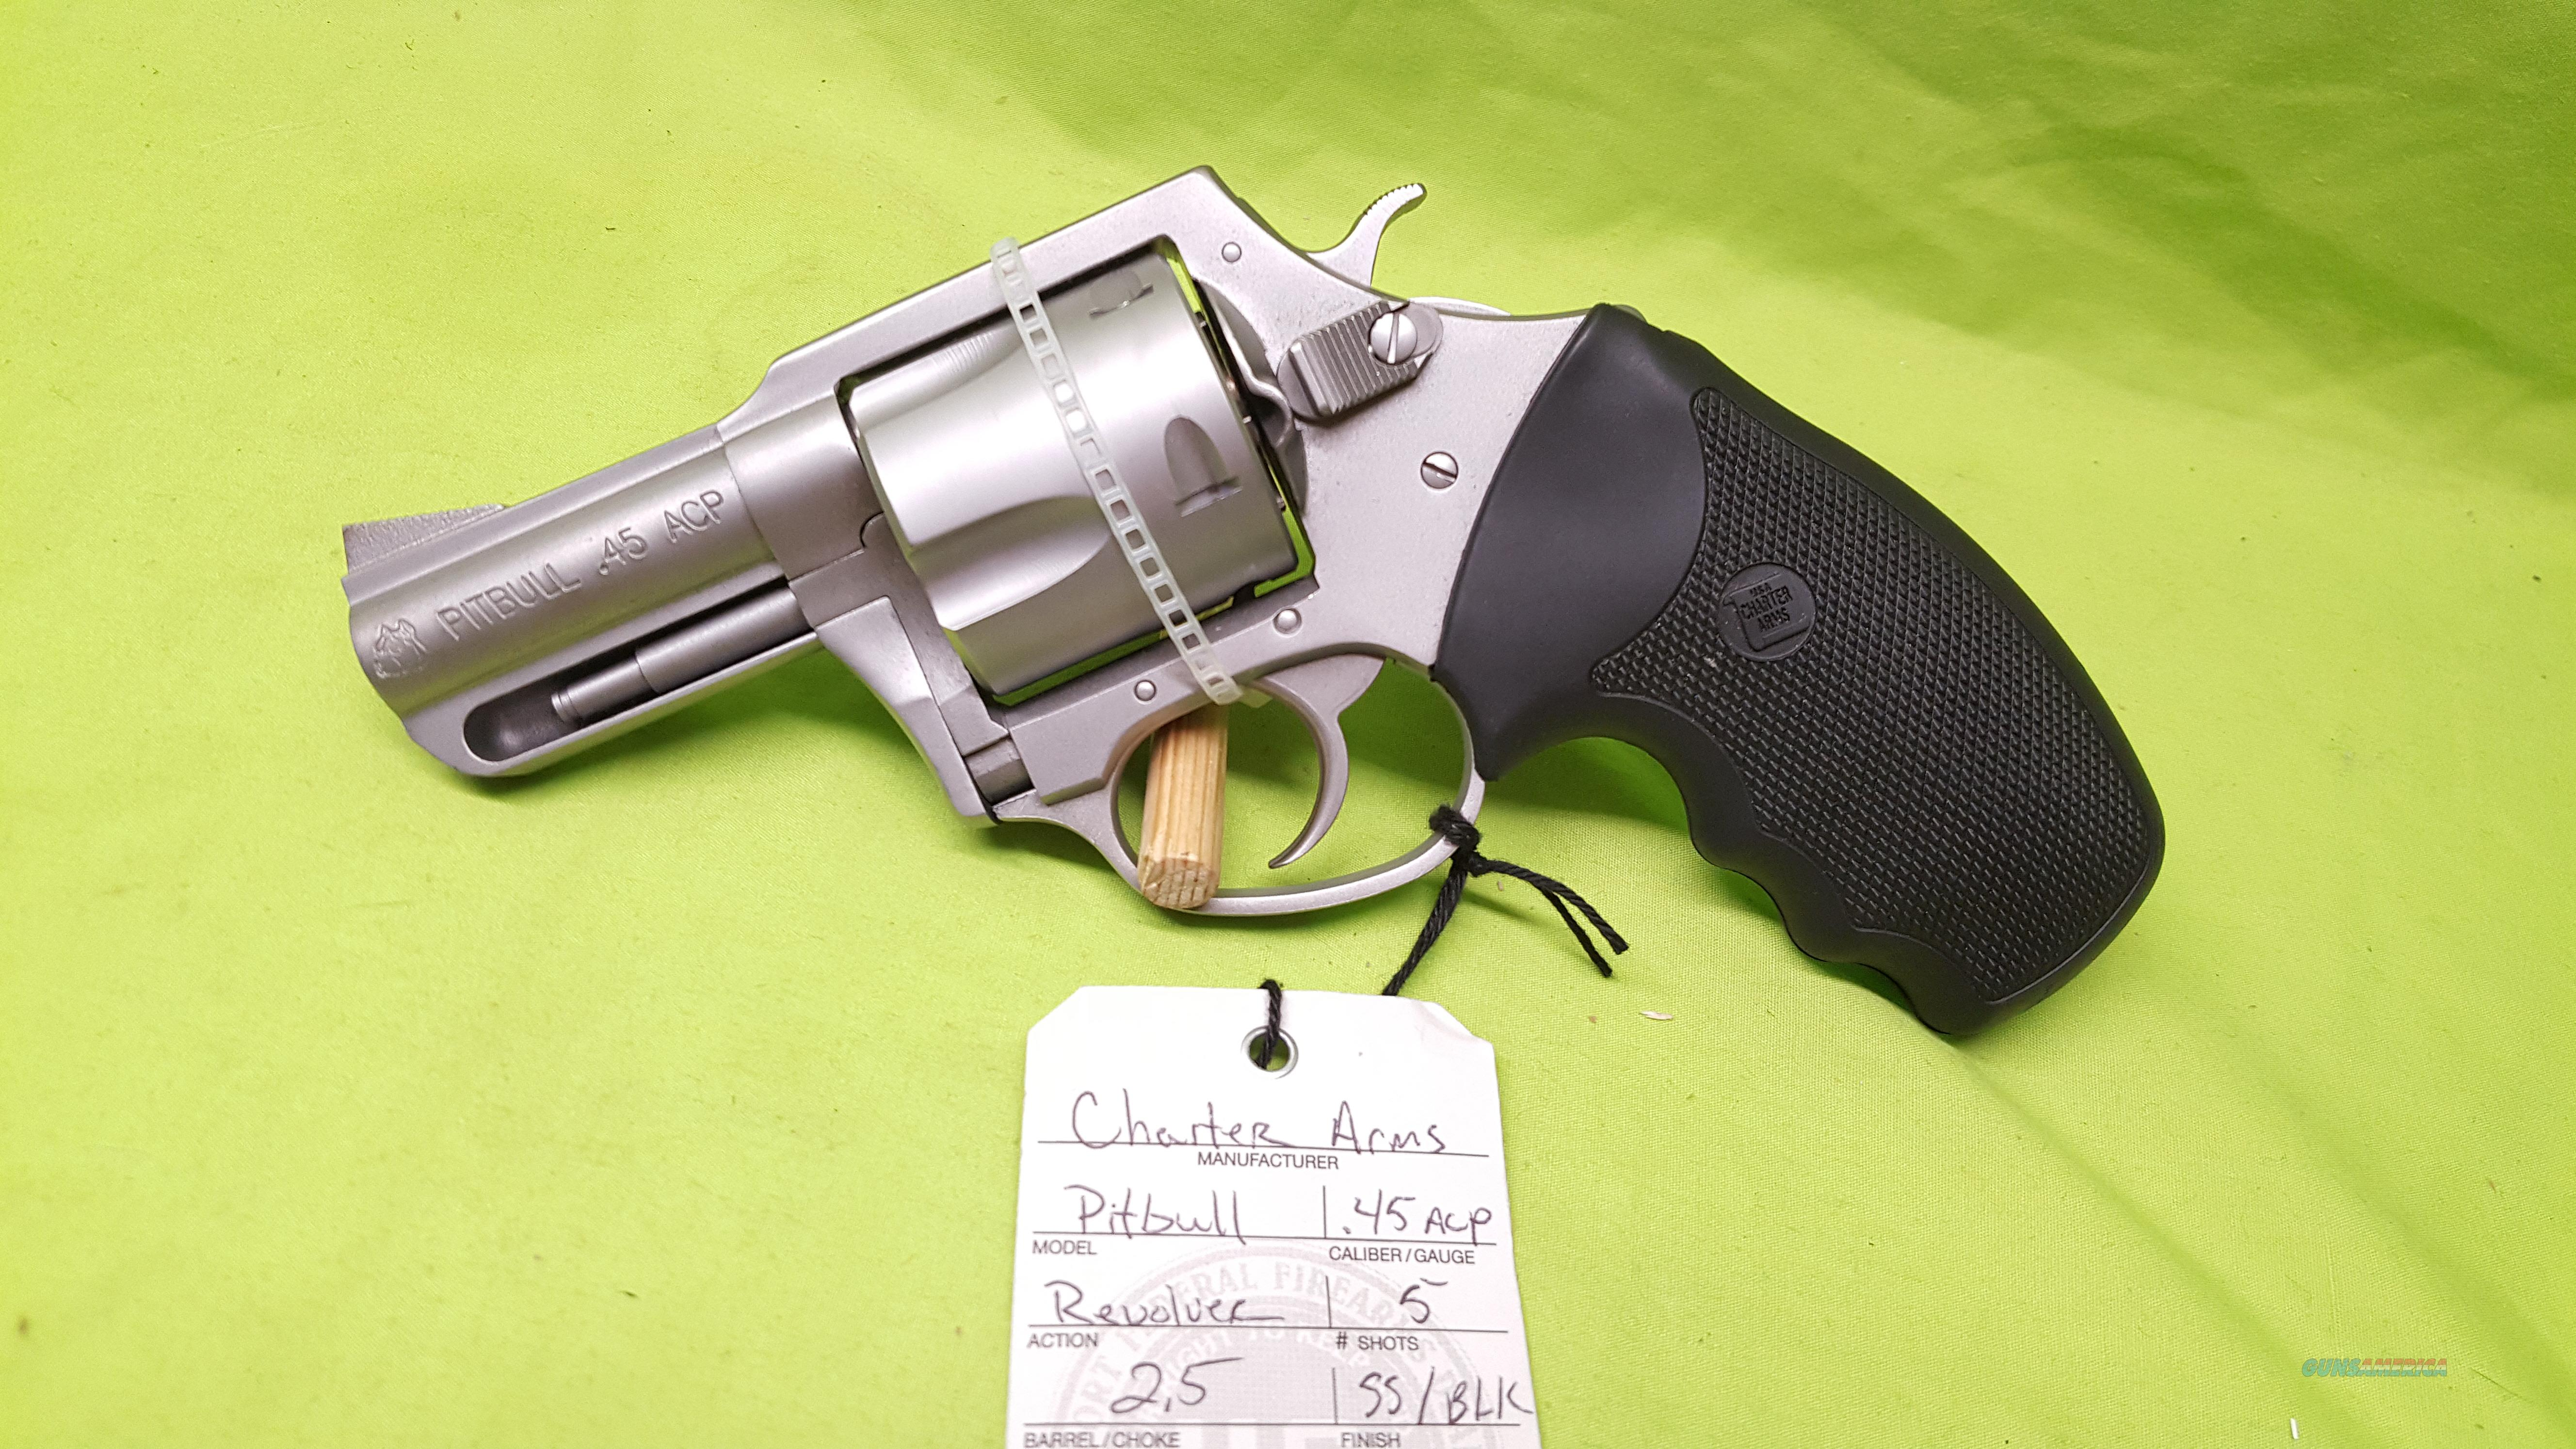 CHARTER ARMS PITBULL 45 45ACP REVOLVER STAINLESS  Guns > Pistols > Charter Arms Revolvers